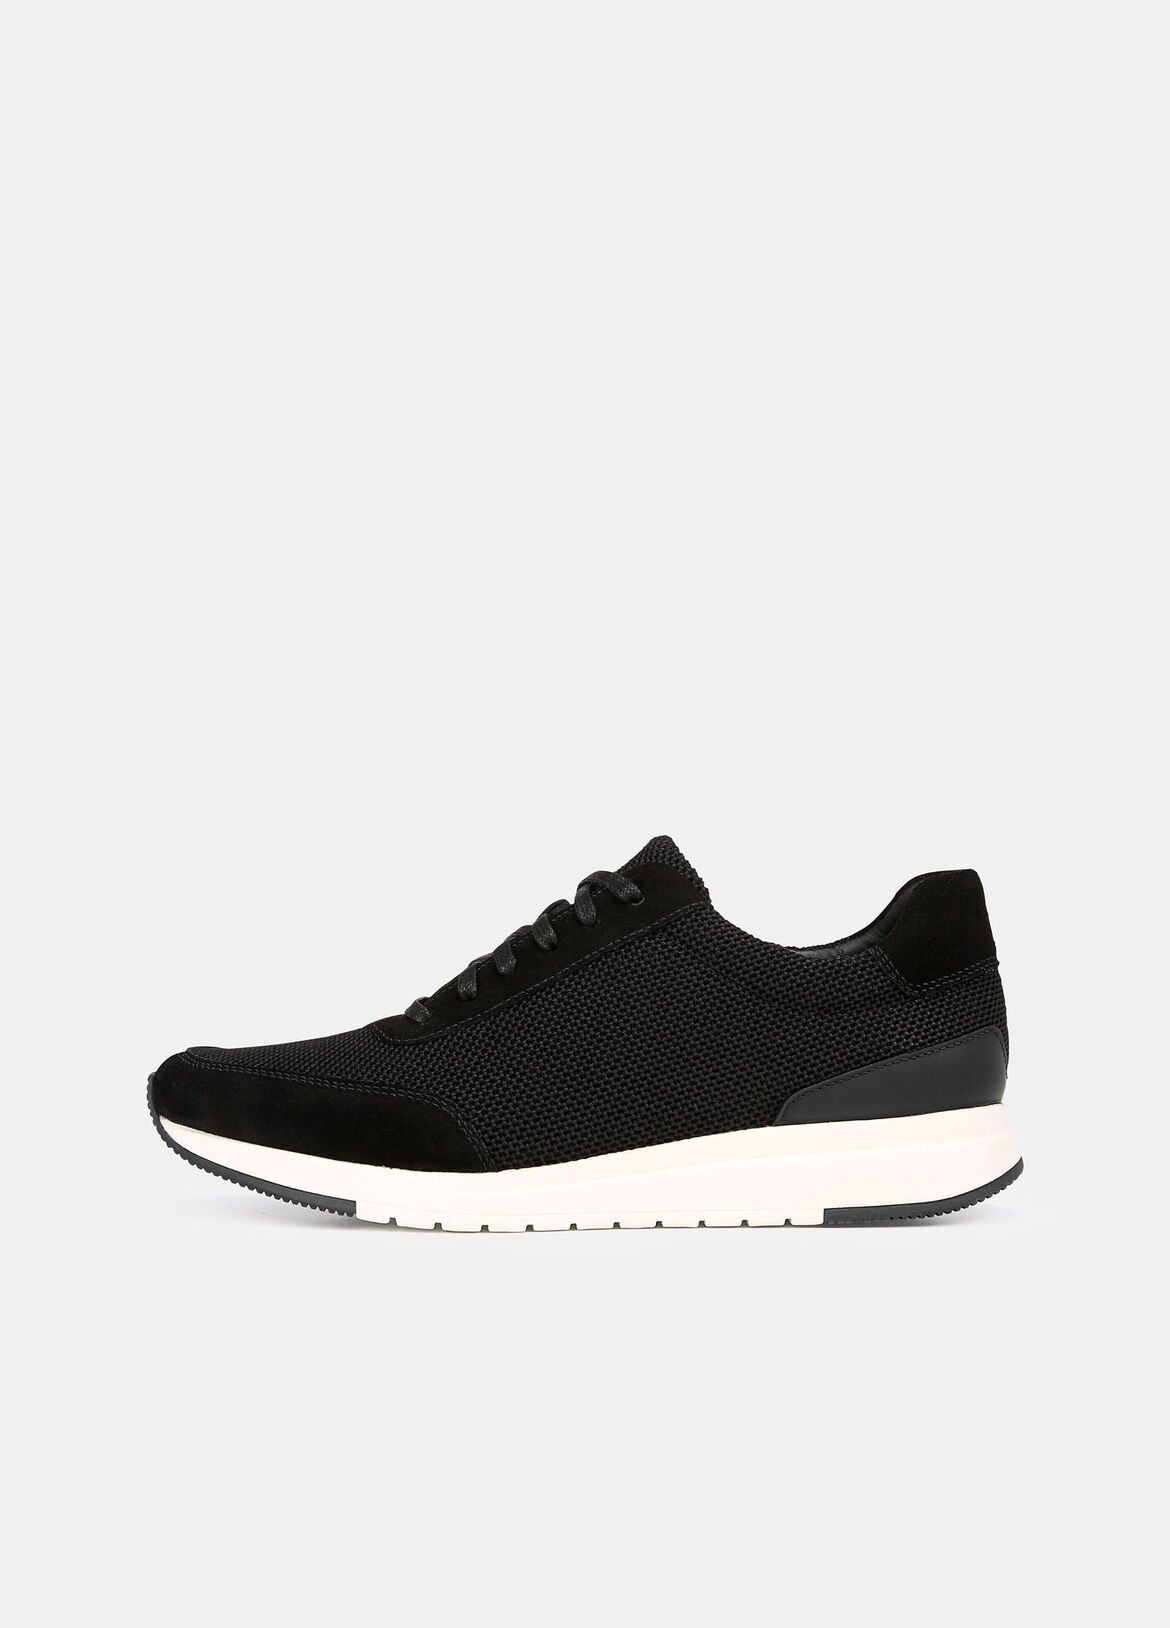 An artful combination of premium suede and mesh, the Payton sneakers are a refined take on the season's sport mood. They're detailed with contrasting tipping at the front and back of the rubber soles.